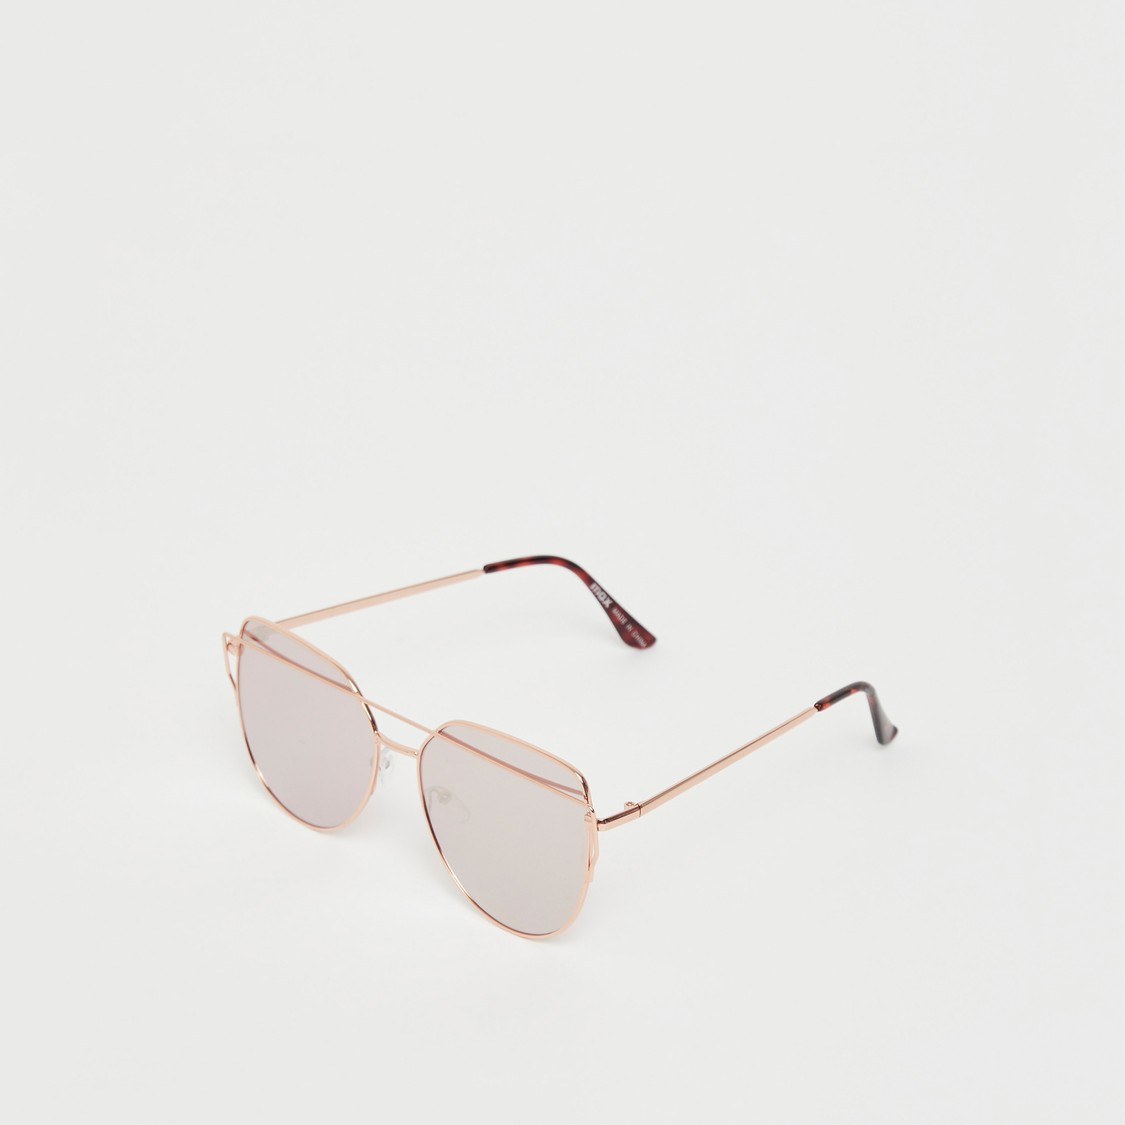 Metal Framed Sunglasses with Nose Pads